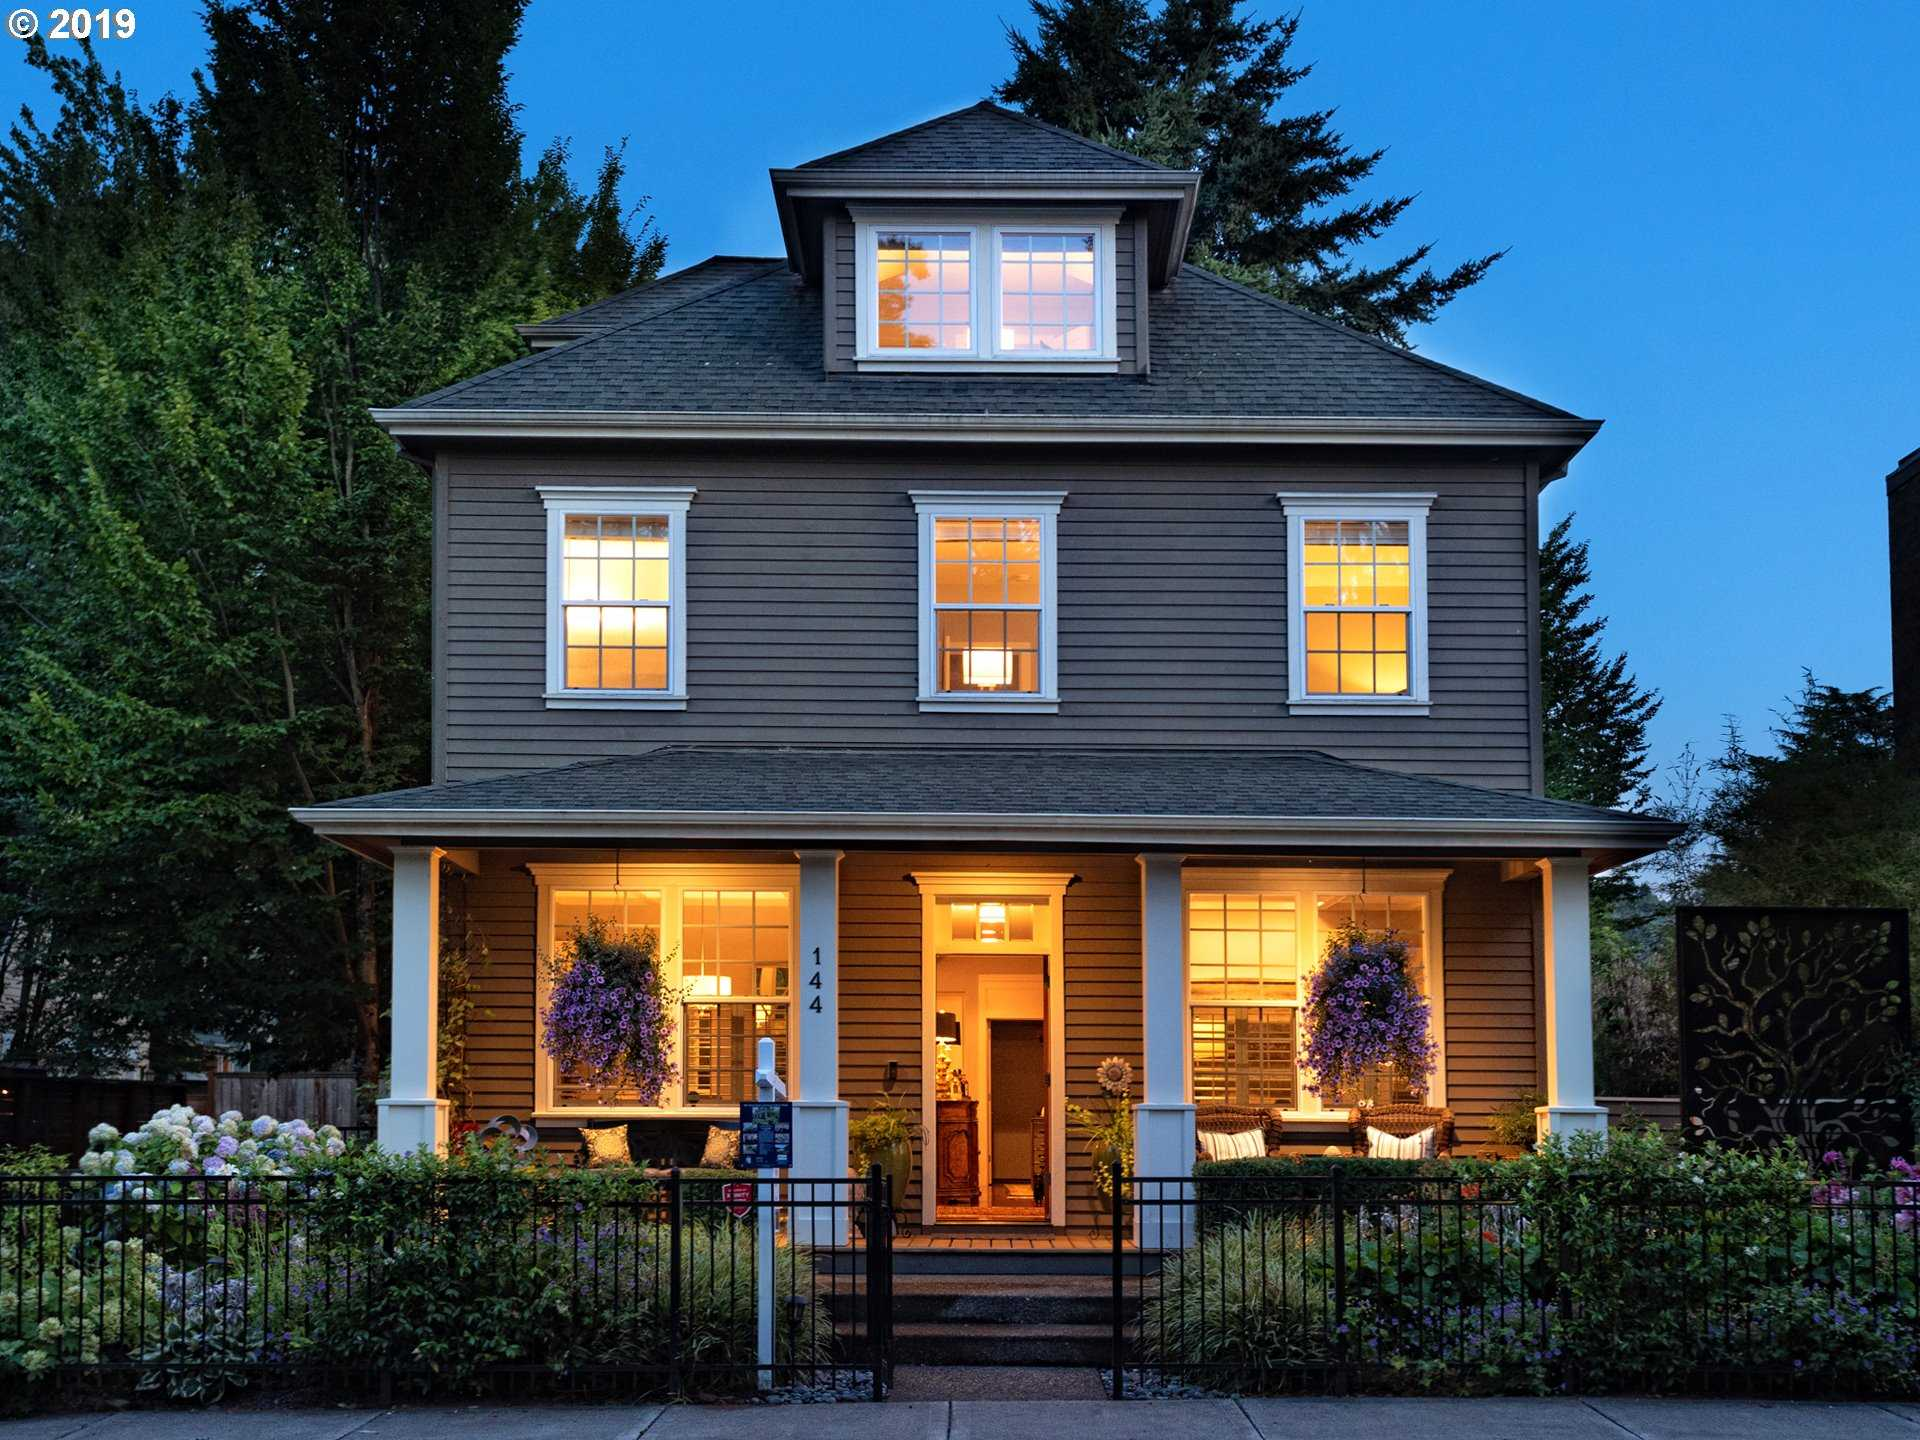 $1,149,000 - 4Br/4Ba -  for Sale in Old Town Lake Oswego, Lake Oswego